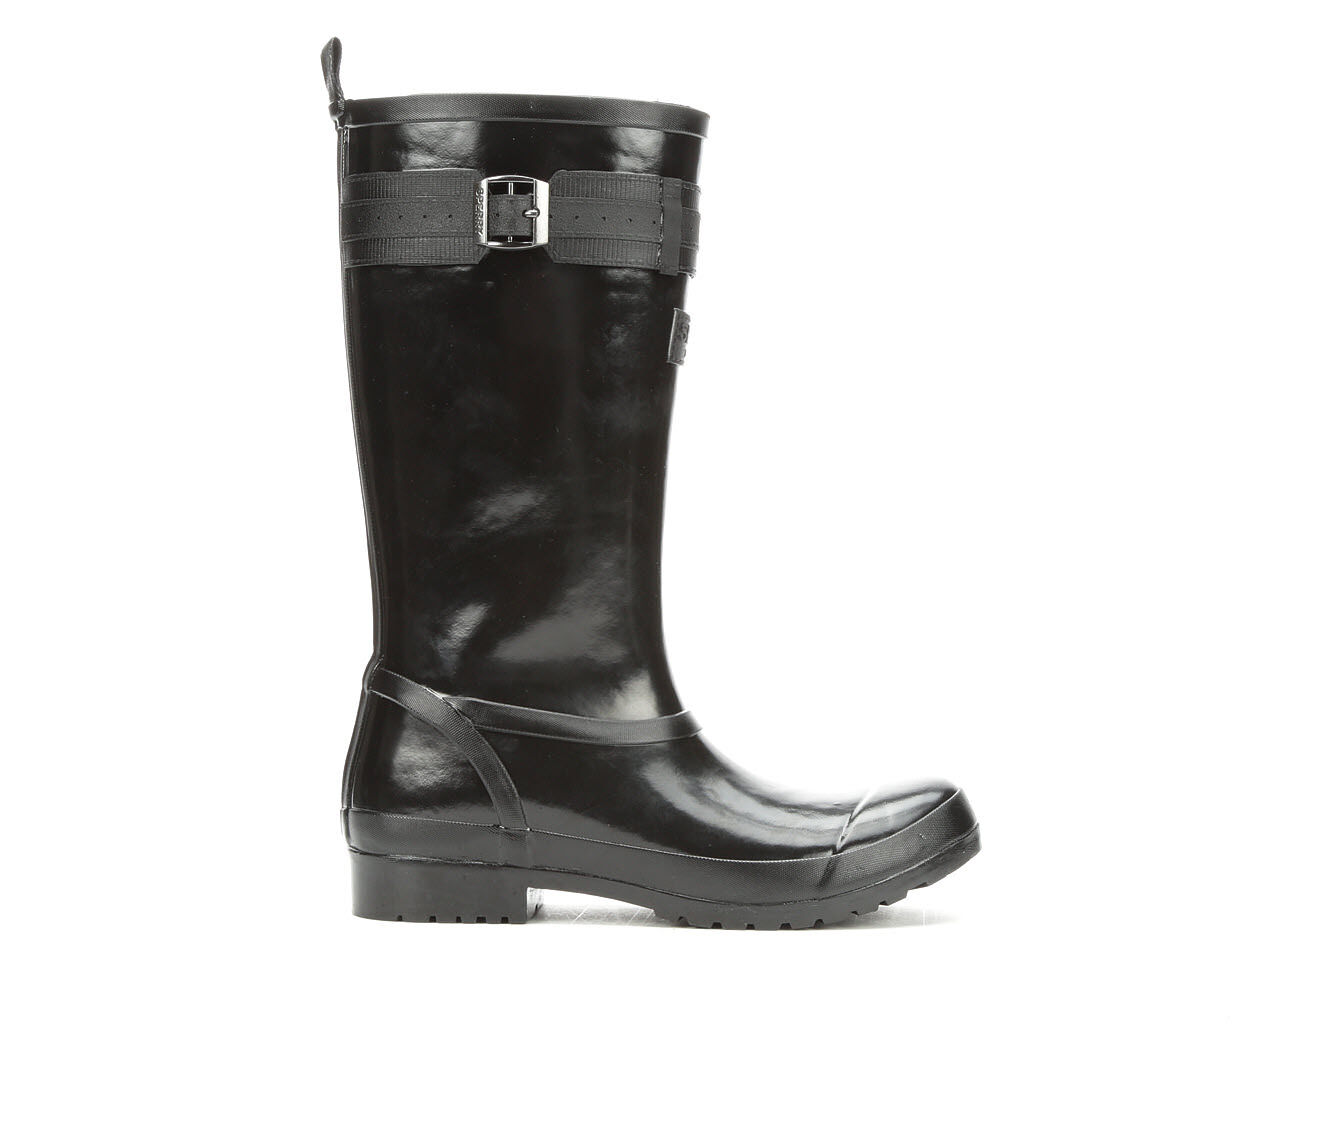 Women's Sperry Walker Atlantic Rain Boots Black